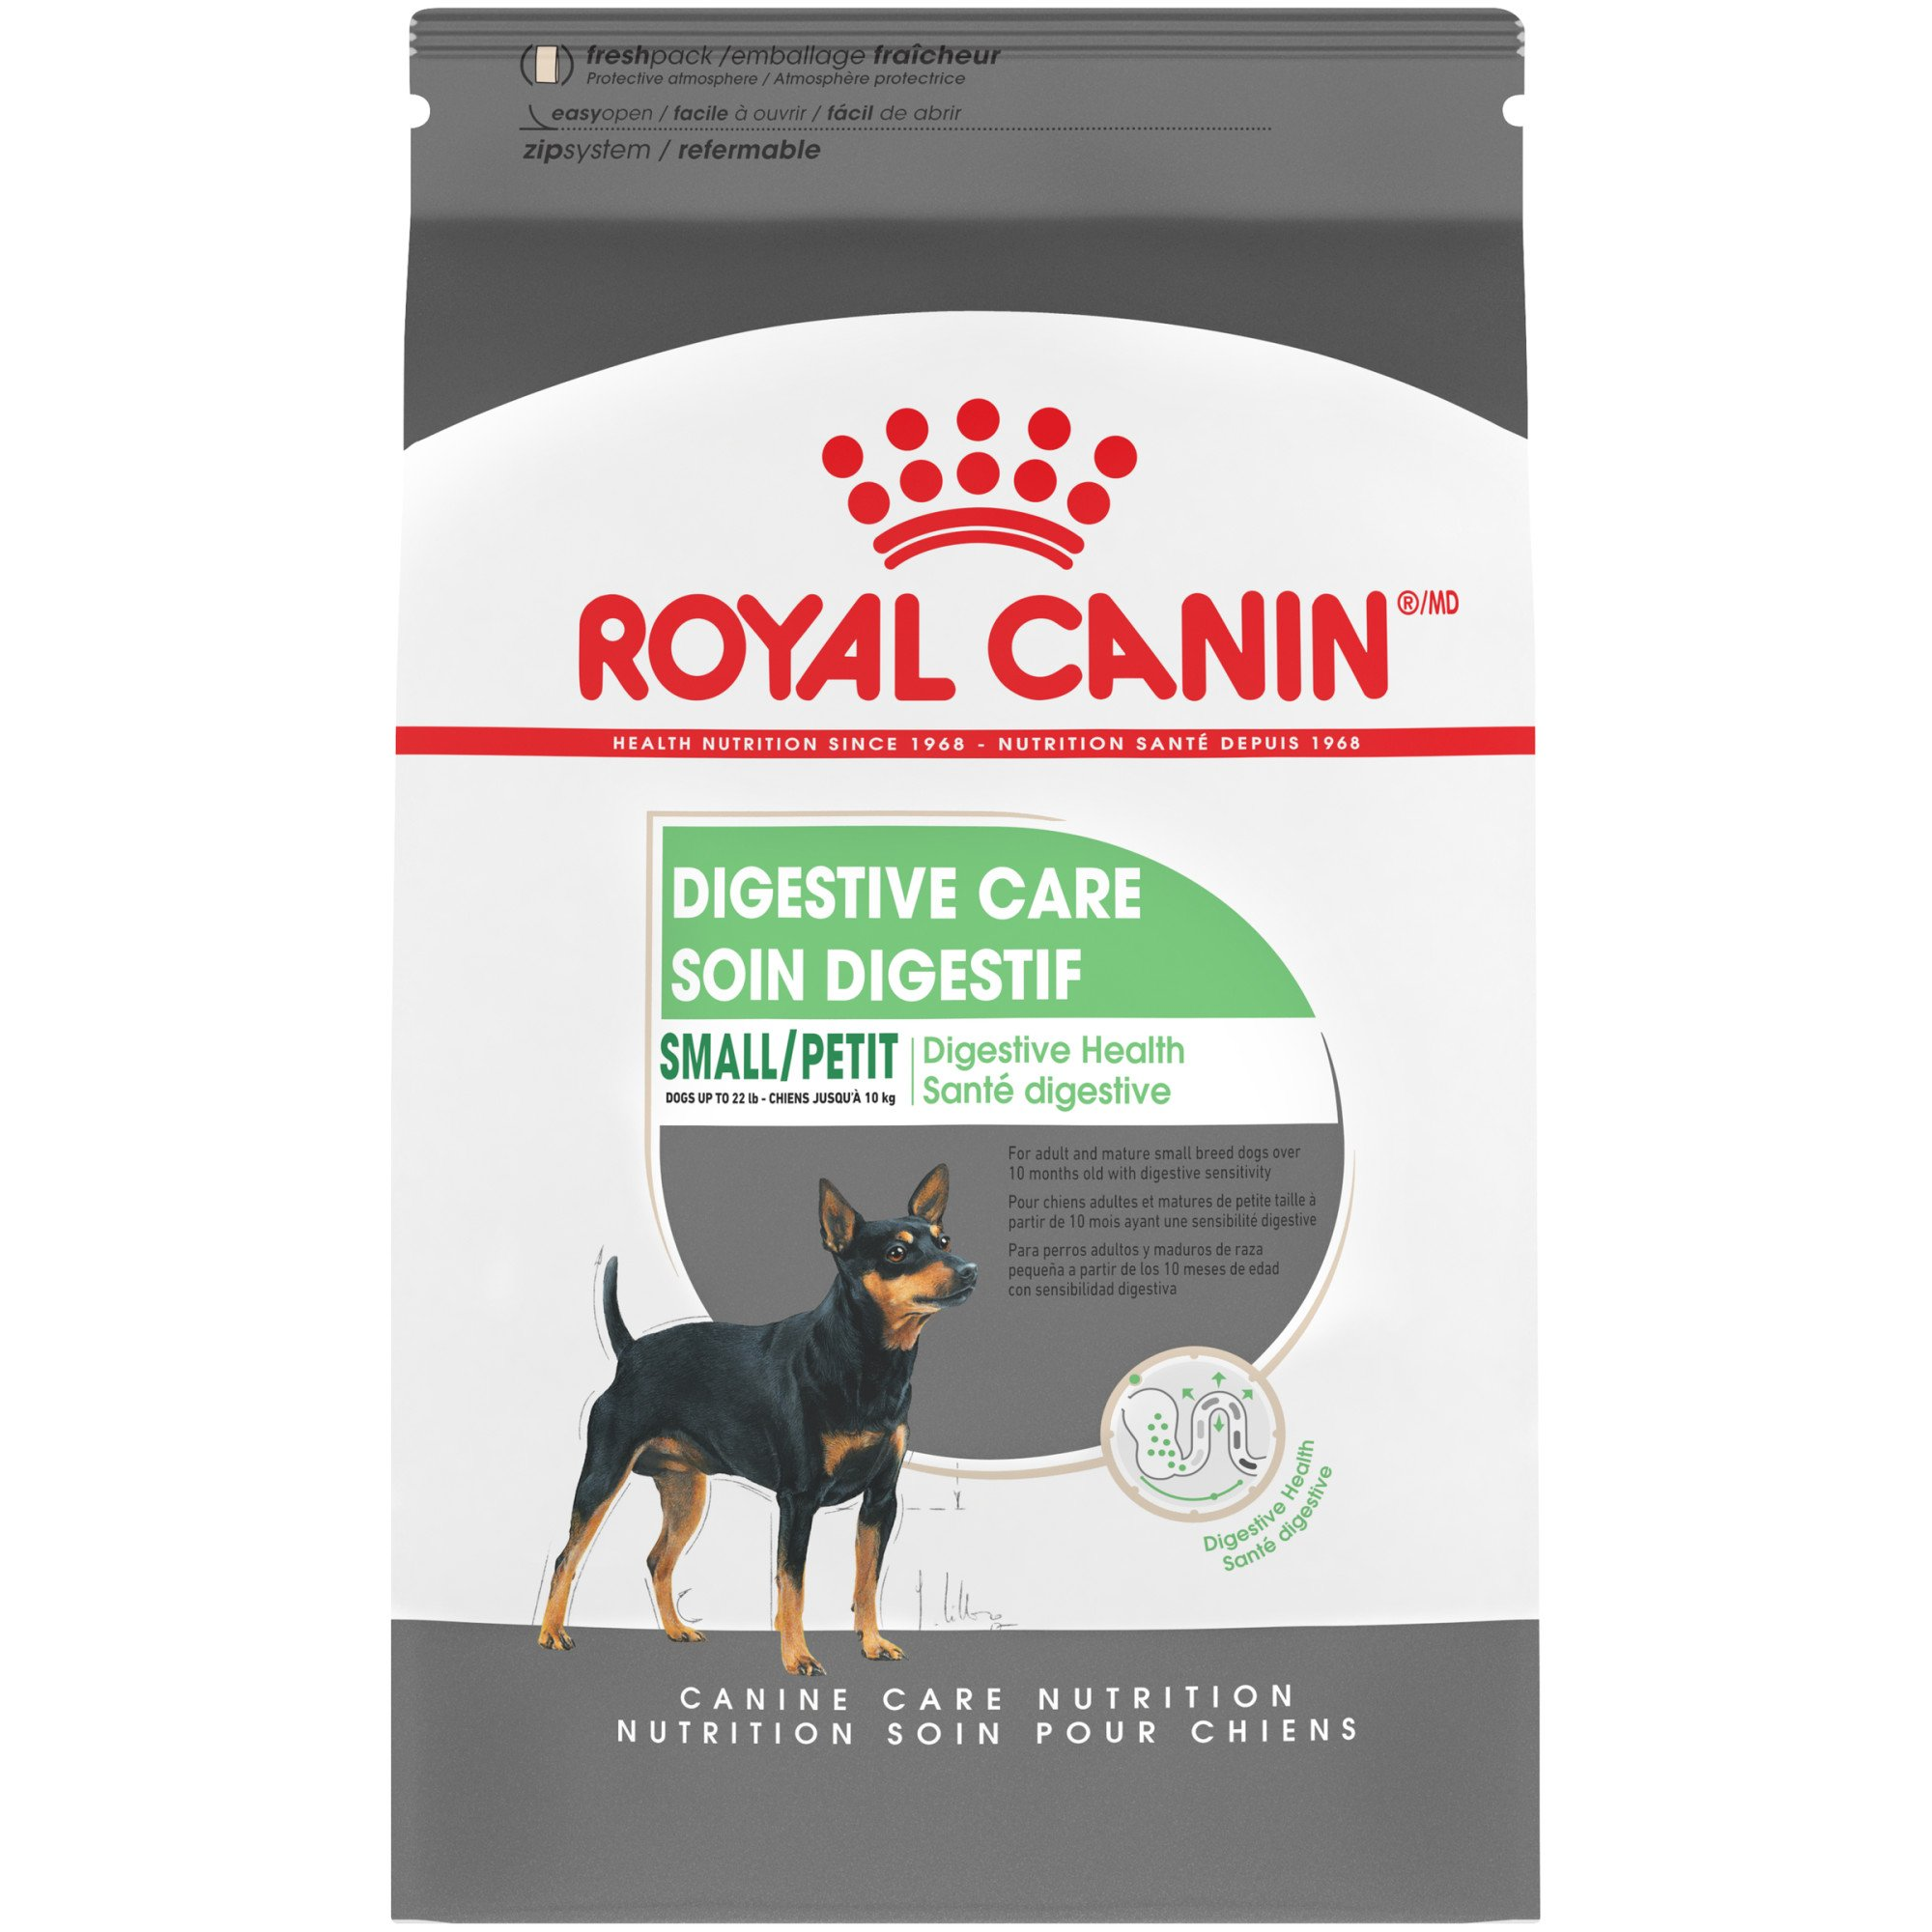 Royal Canin MINI Special Adult Dog Food